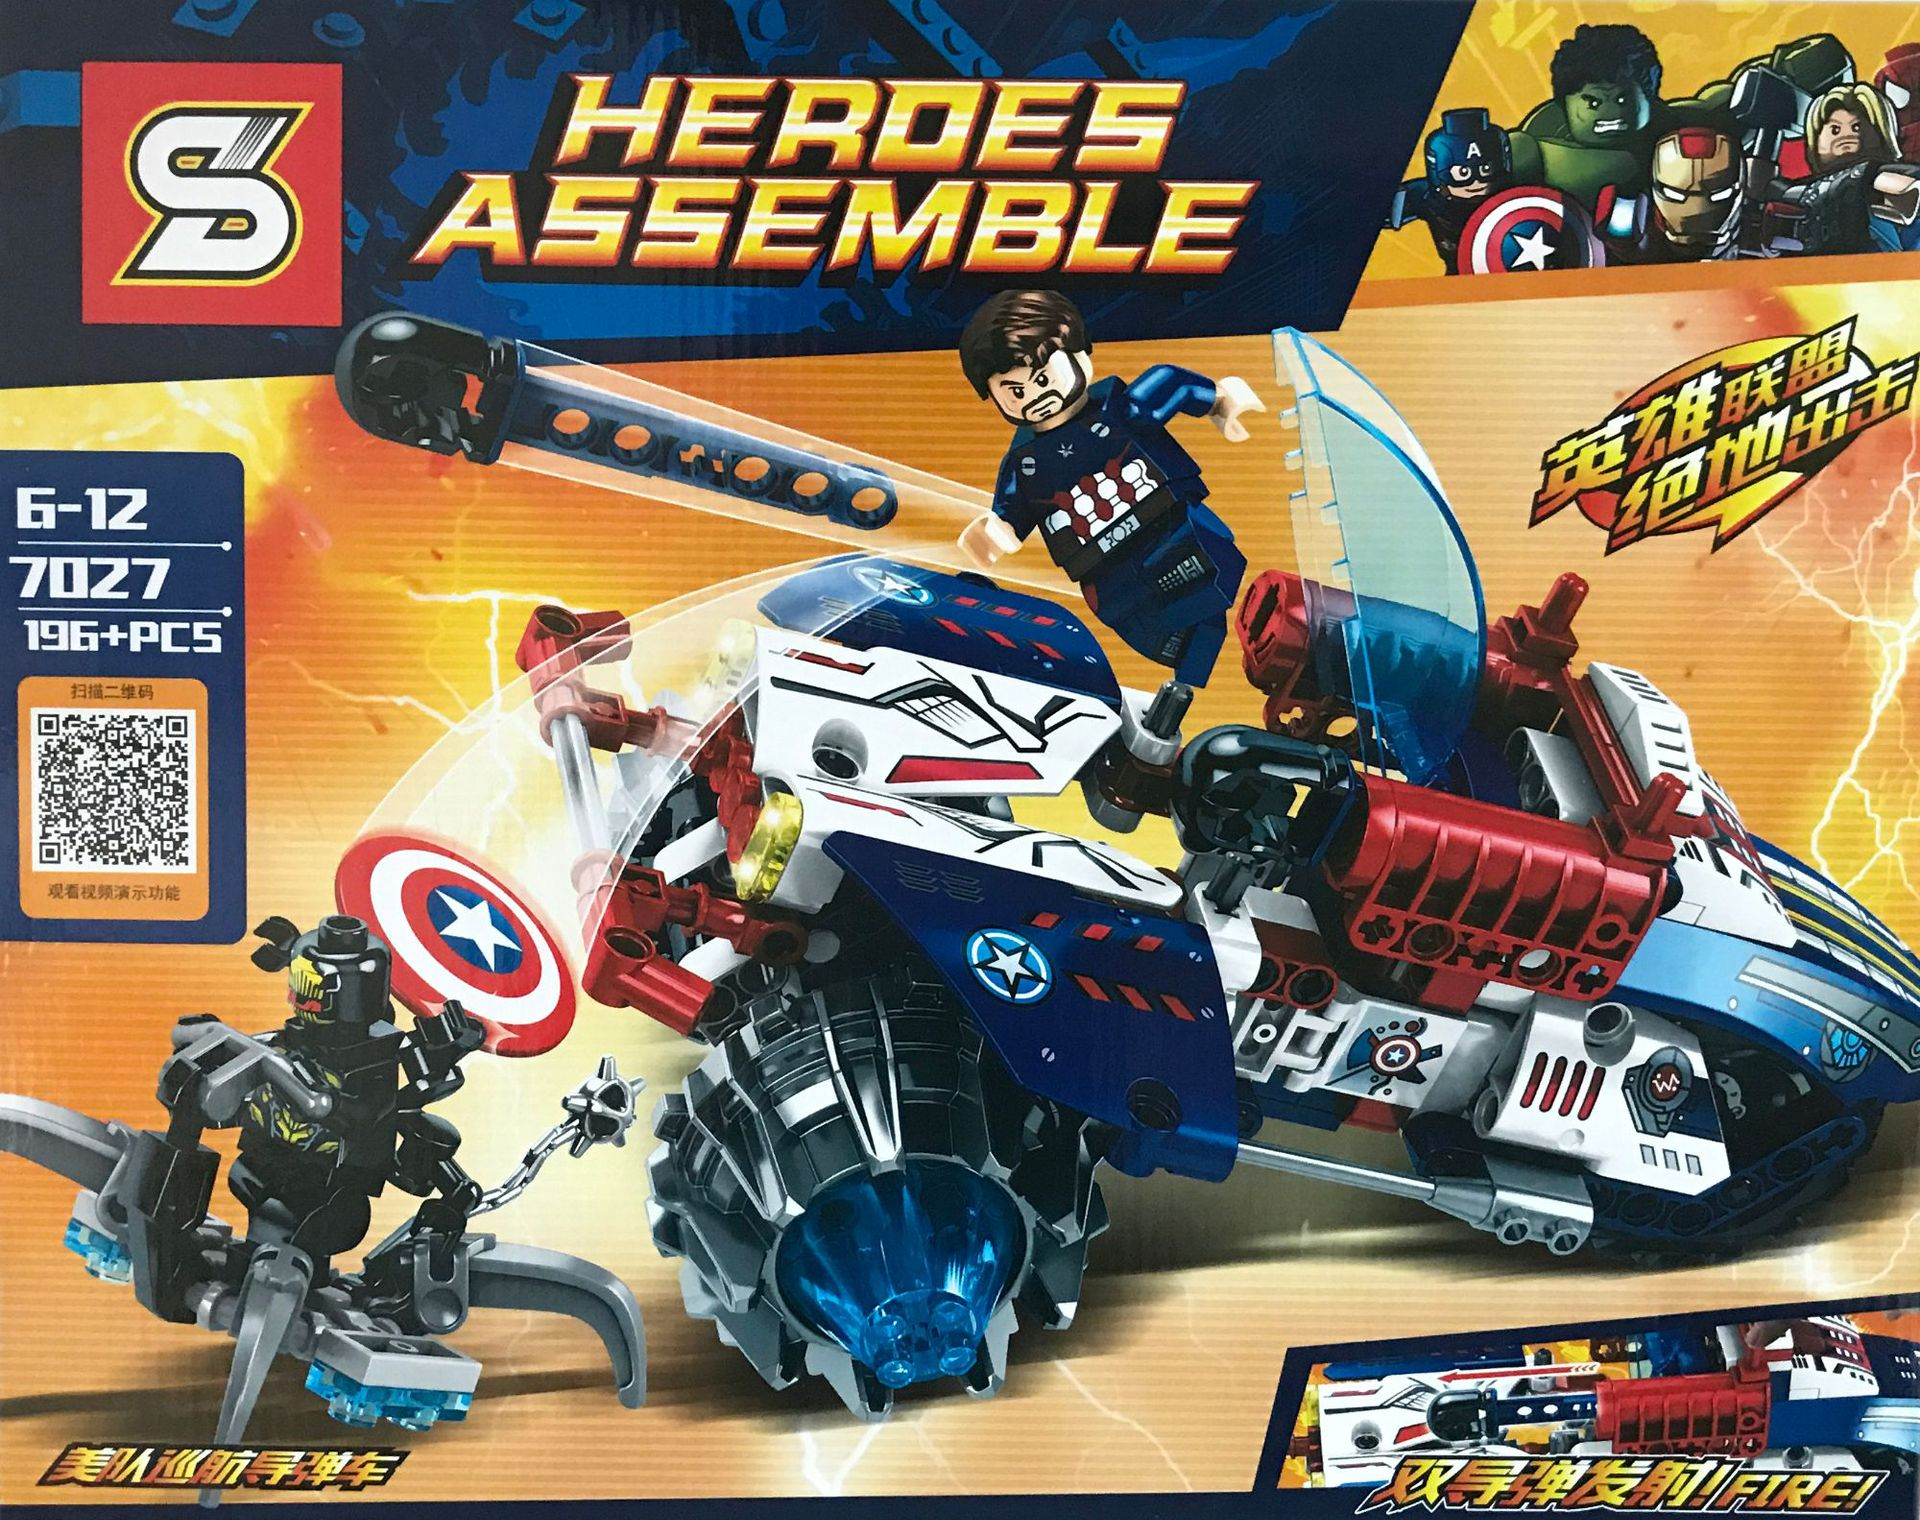 Avengers 3 Blocks Captain America Cruise Missile Car Blocks Super Heroes Marvel Figures Building Blocks Mini Bricks Children Toy золотой спрей лосьон ultra brilliant the sublime gold lotion